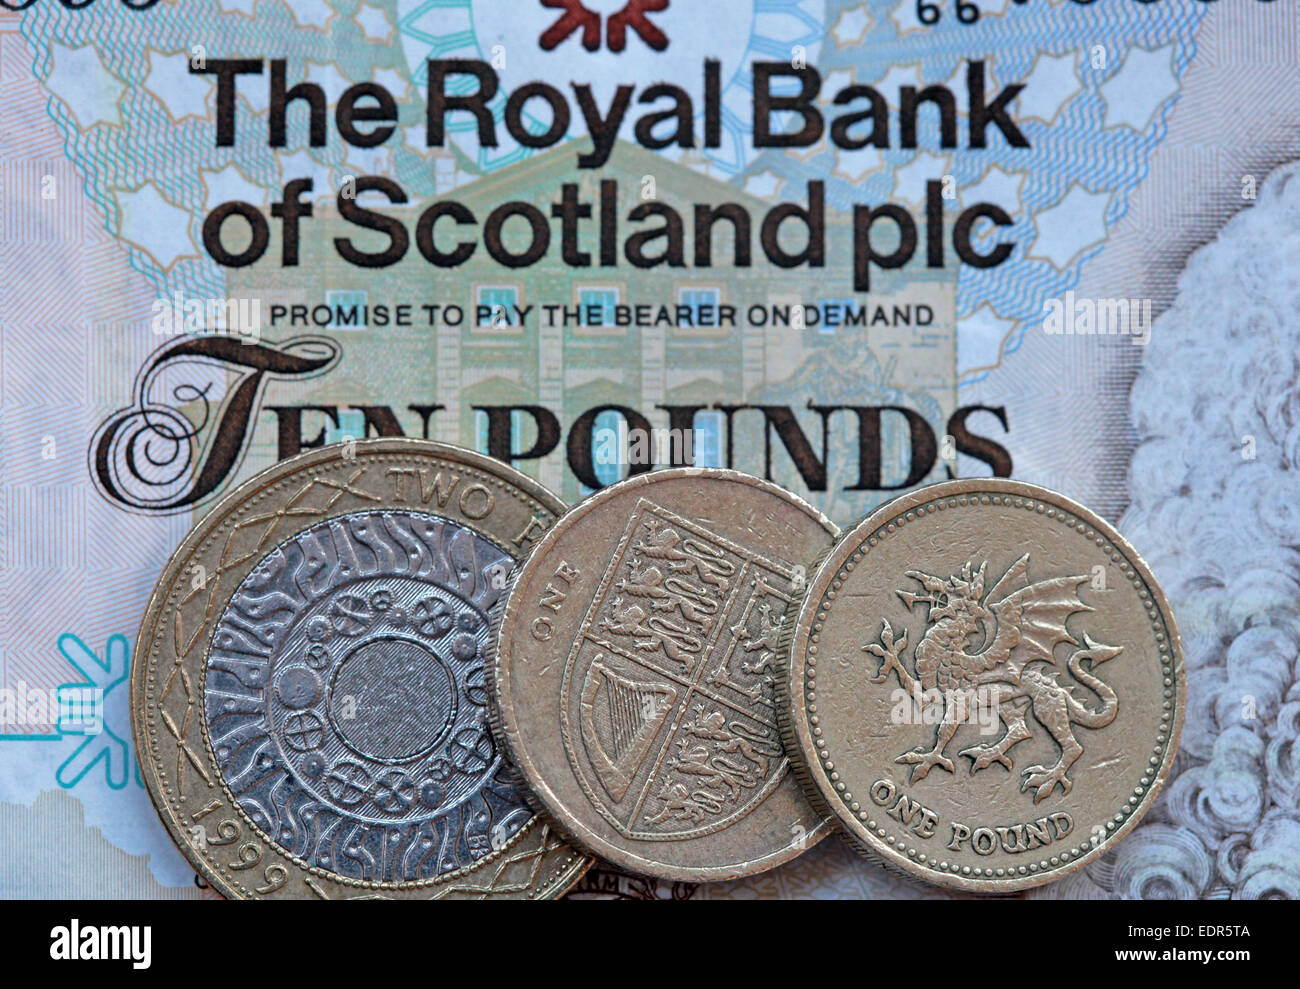 uk,Britain,British,pound,pounds,currency,Europe,banknotes,close,up,close-up,notes,still-life,stilllife,system,capital,capitalist,system,capitalism,closeup,cut-outs,cut,out,finances,financial,crisis,nobody,notes rbs bos clydesdale banks,Tartan Economy,welfare reform,Gotonysmith,retail-bank,retail,banknote,Scots,economy,economic,crisis,tax,HB,benefit,universal,welfare reform wallpaper landscape horizontal city,business,stack,pile,cash,wealth,wealthy,prosperity,mean,institutions invest,stock,speculate cash wonga prosperous,prosper,prosperity,wealth,wealthy,rich,poor,success,successful pile tartan,economy,crash,recession,British,Union,unionist,45,55,banknotes,Charter,Act,1844,coinage,Commissioners,for,Revenue,and,Customs,of,Issue,Universal benefit